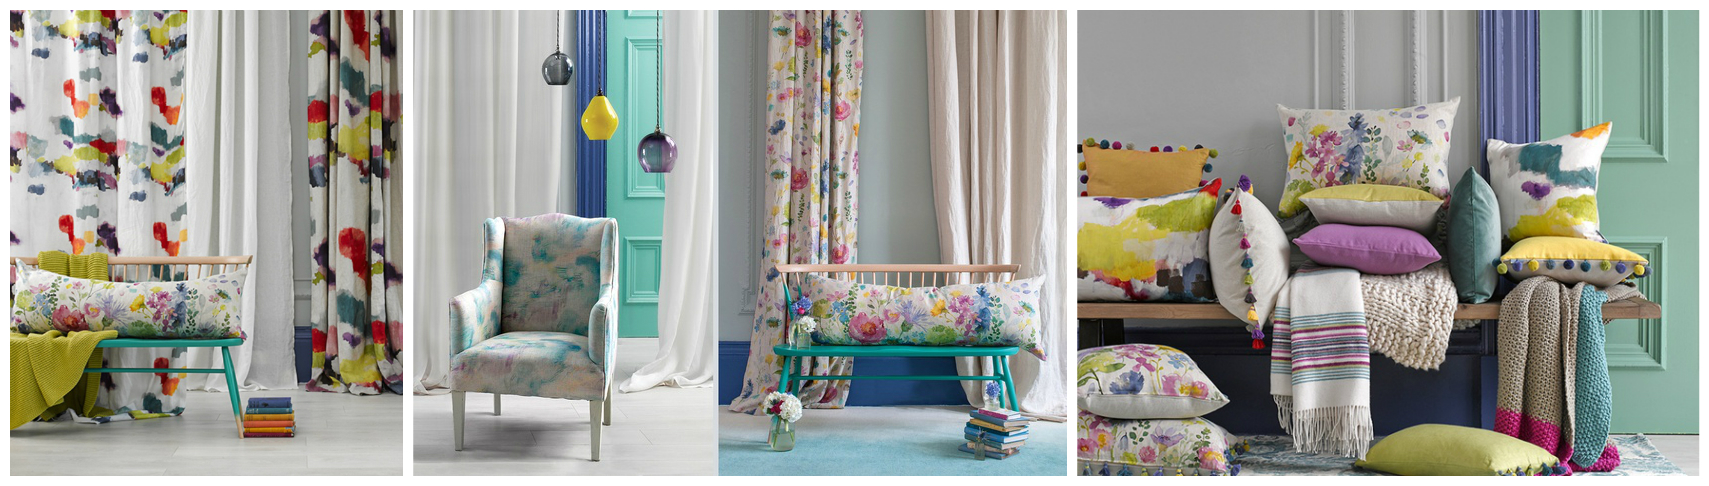 Fabrics To Brighten Your Day And Your Home Next Home